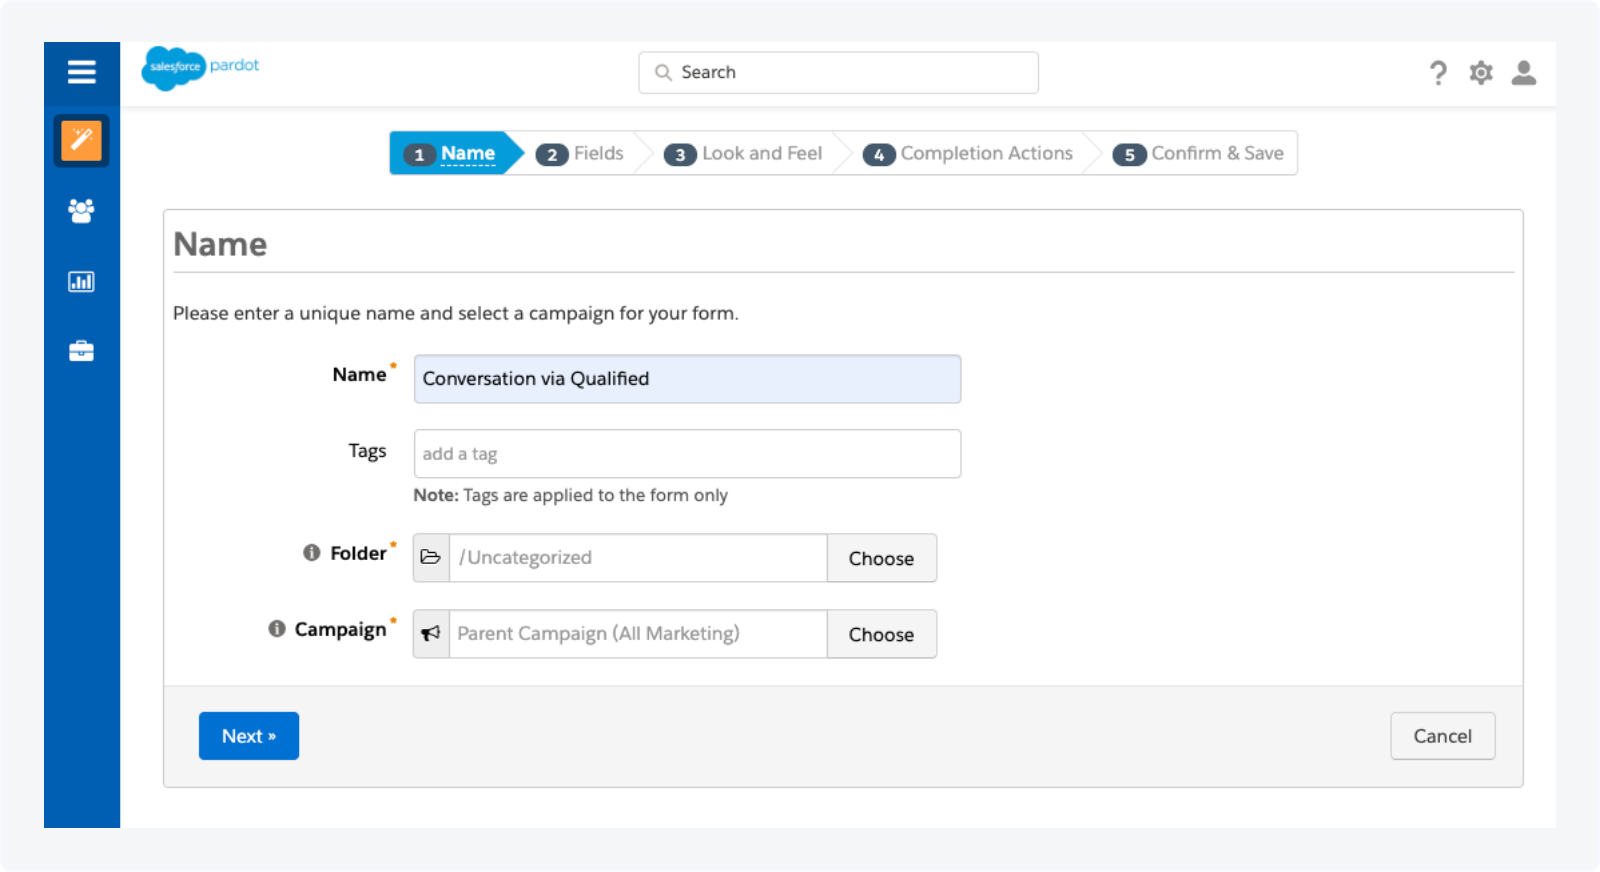 Creating a Pardot Form to Track Qualified Conversations as Activities Step 2